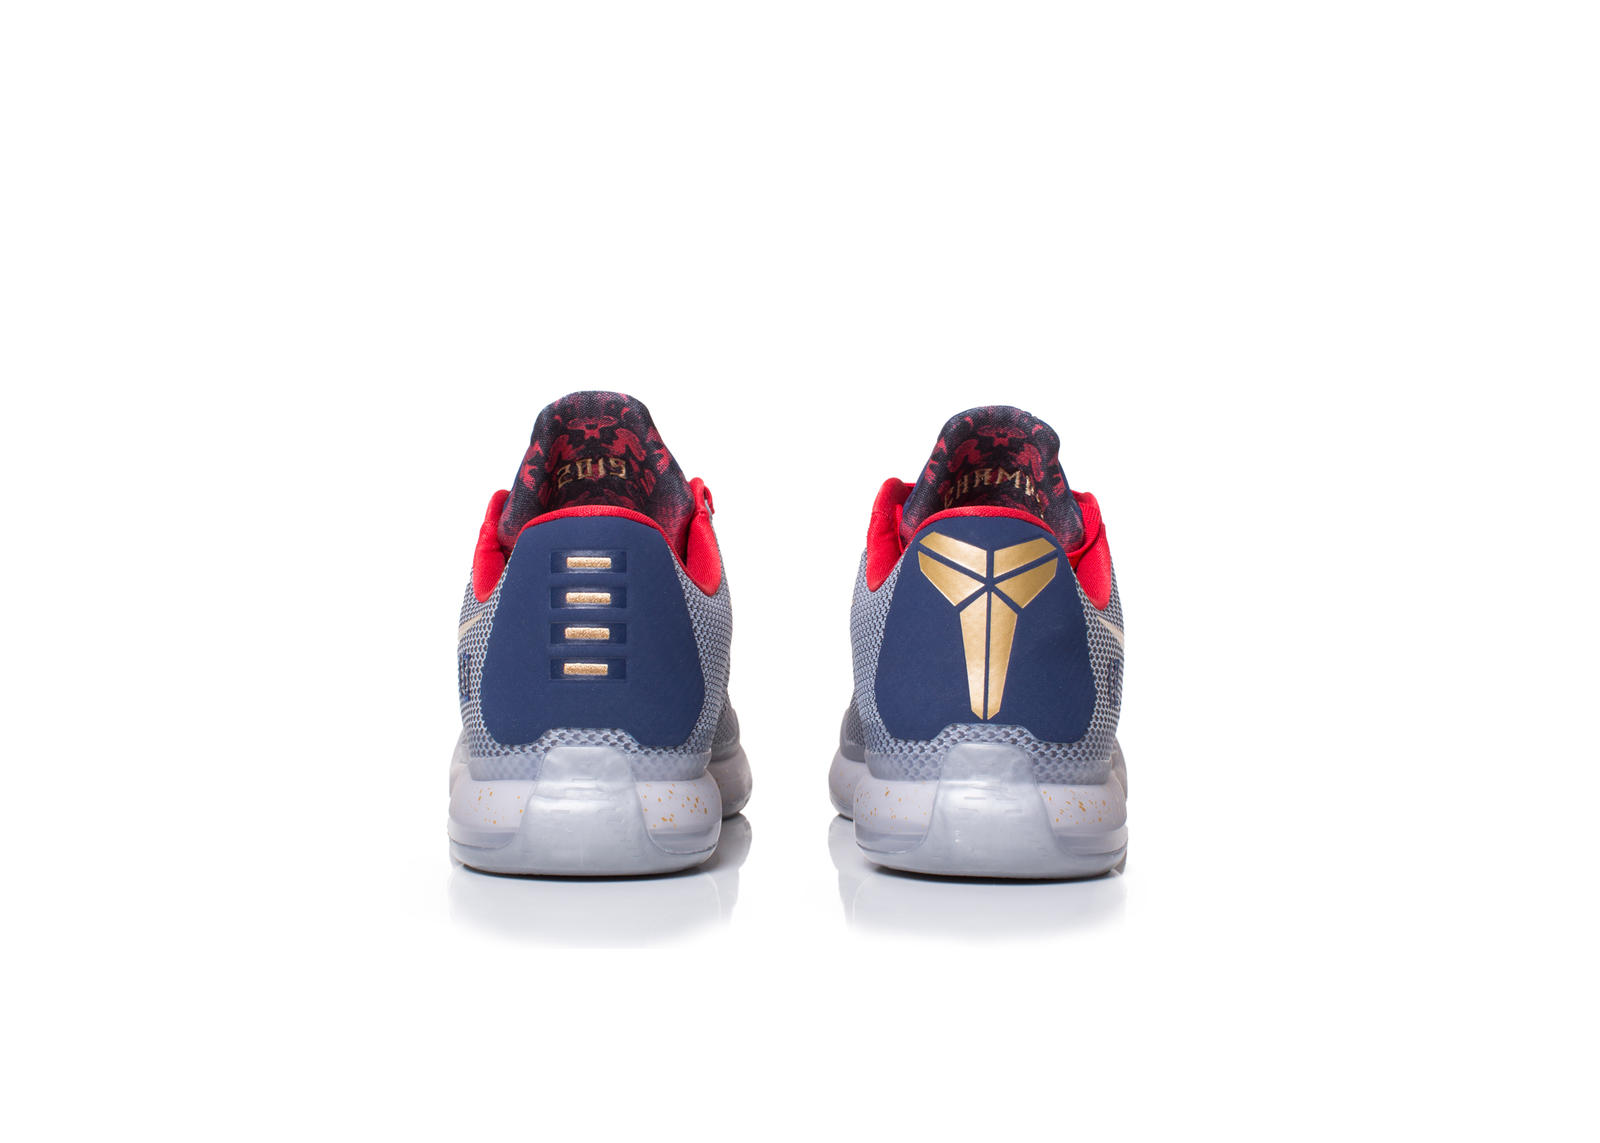 Kobe x uconn 2 rectangle 1600